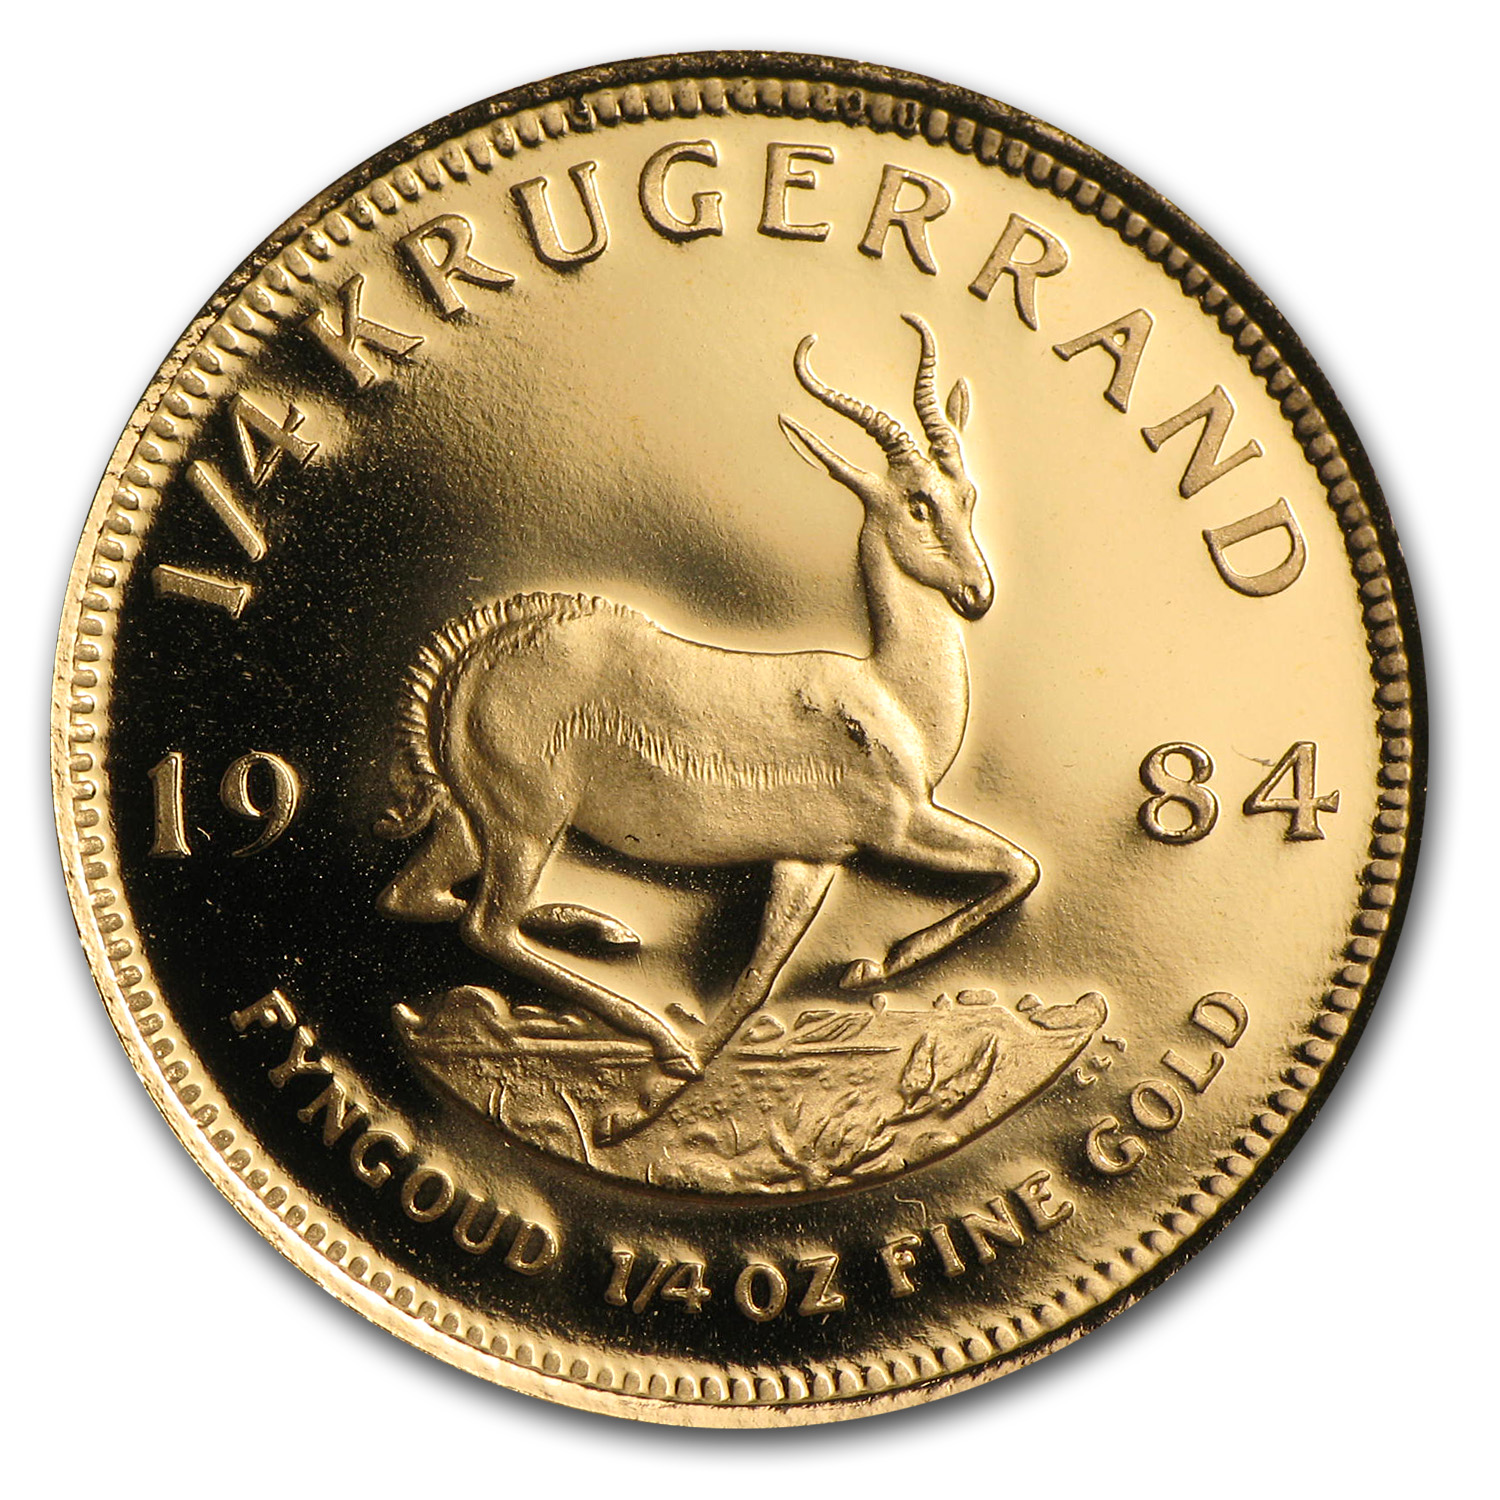 1984 South Africa 1/4 oz Proof Gold Krugerrand